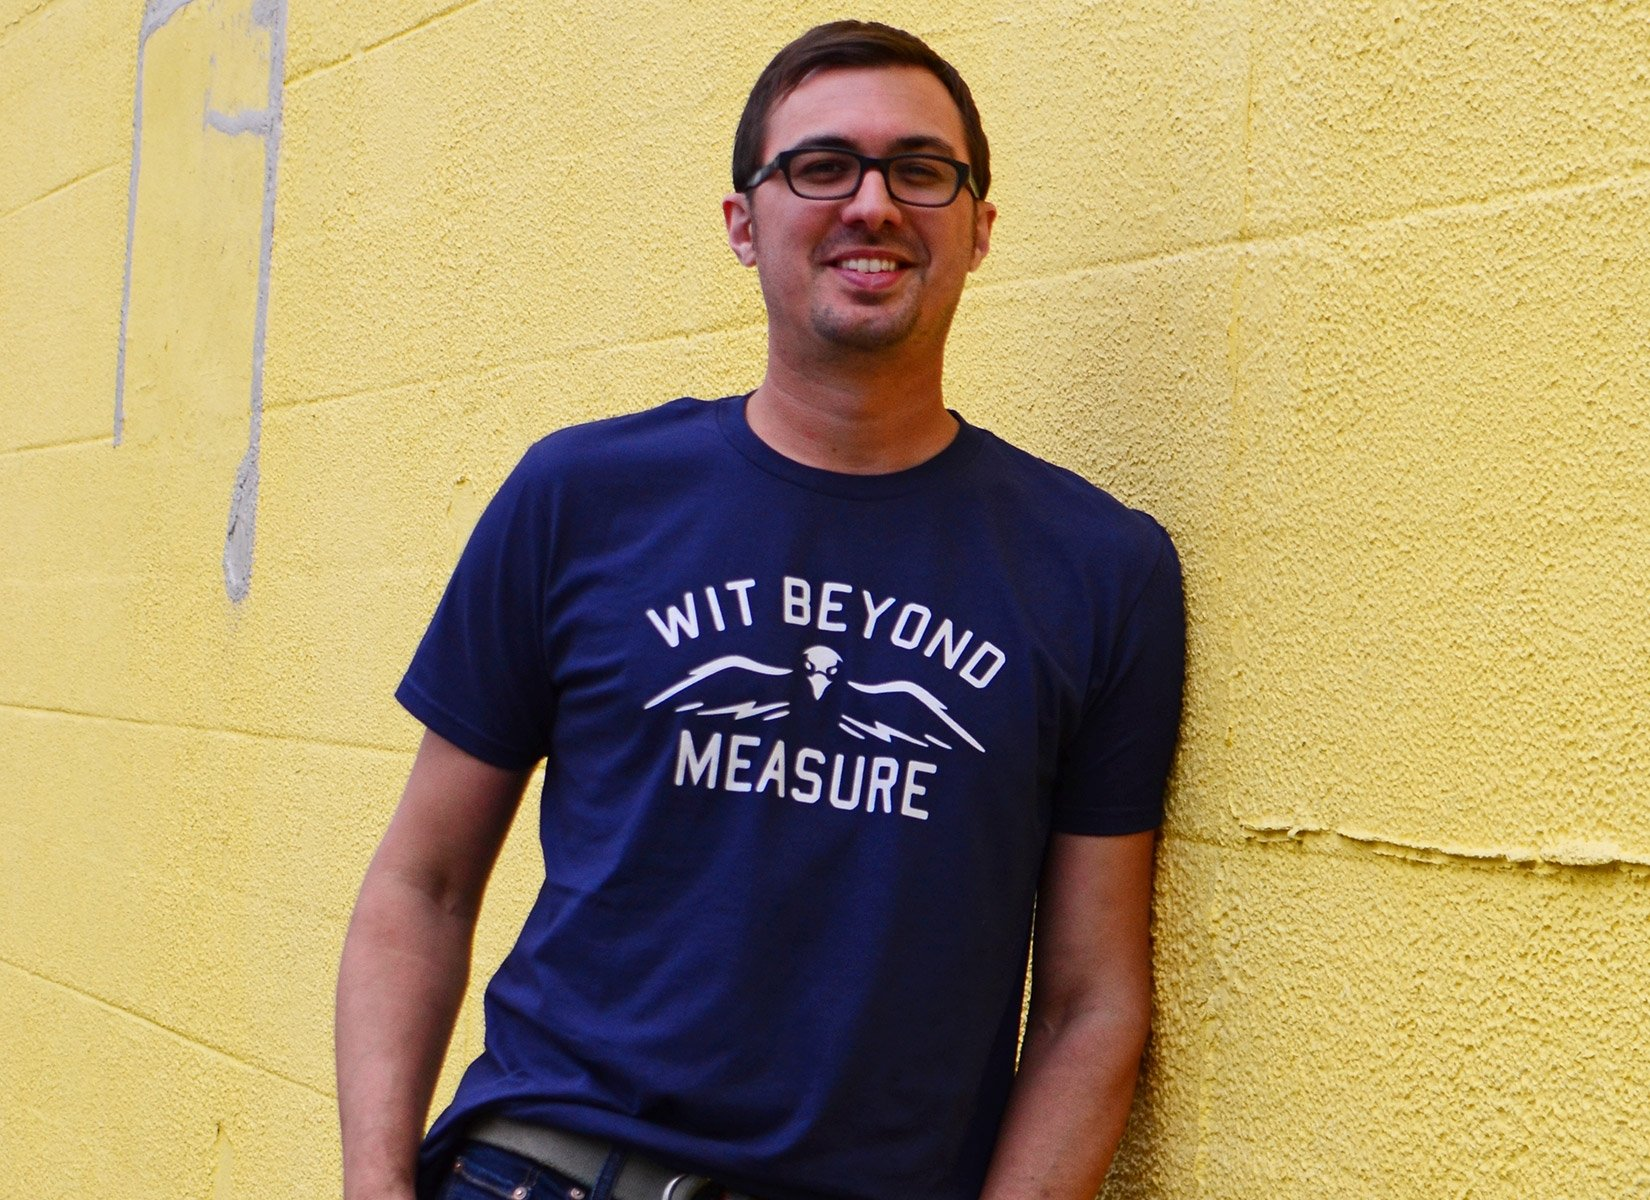 Wit Beyond Measure on Mens T-Shirt